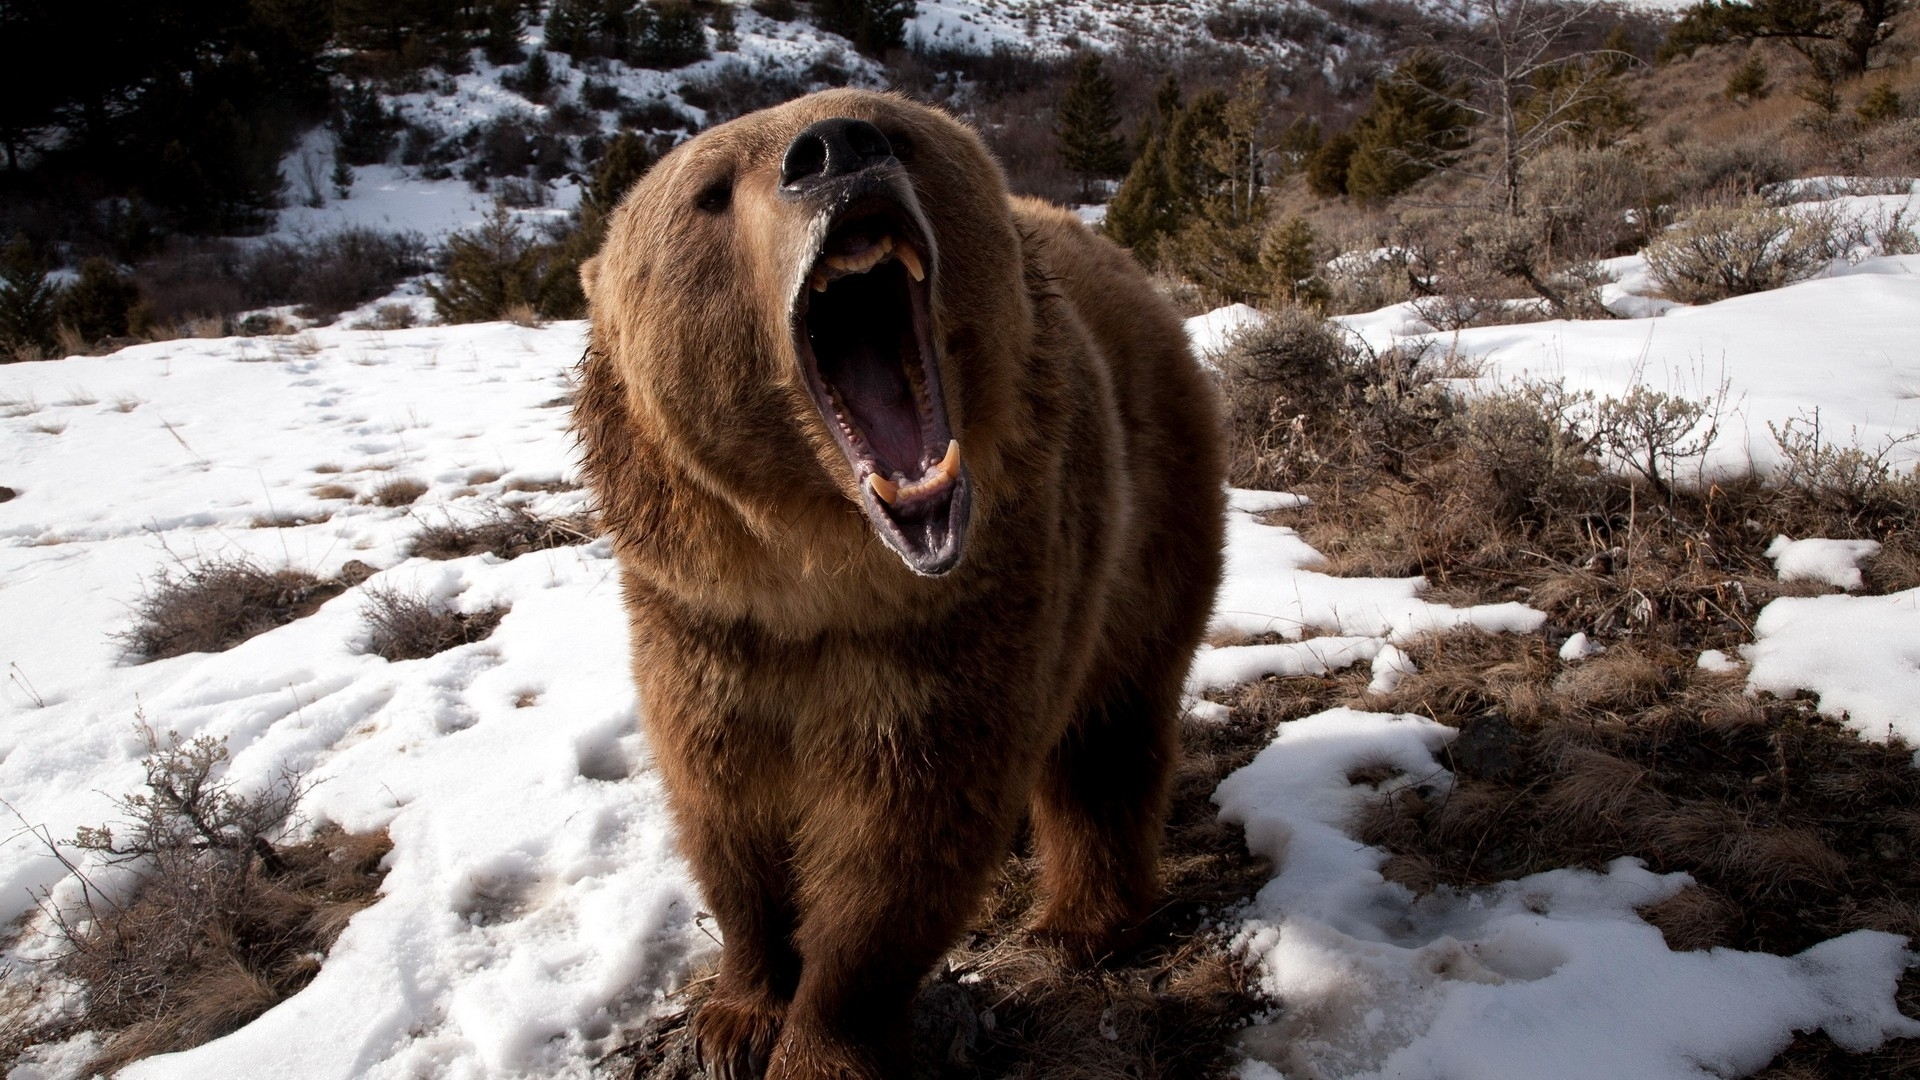 Pin Black Bear Teeth Wolf Cougar Grizzly Mountain on Pinterest